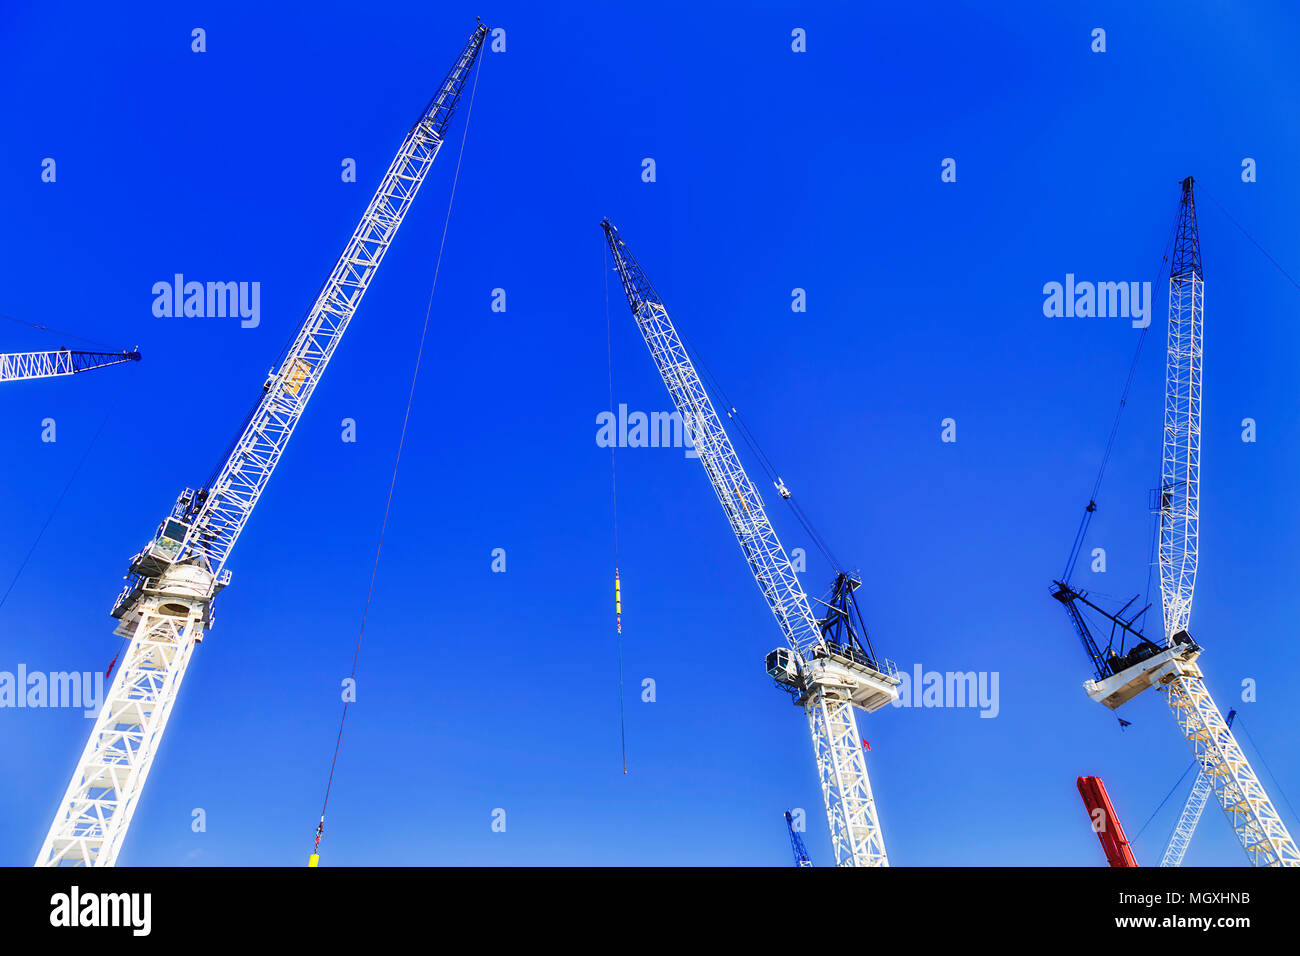 Traditional construction economy with many construction cranes at building site in Australia against clear blue sky in growing strong market condition Stock Photo